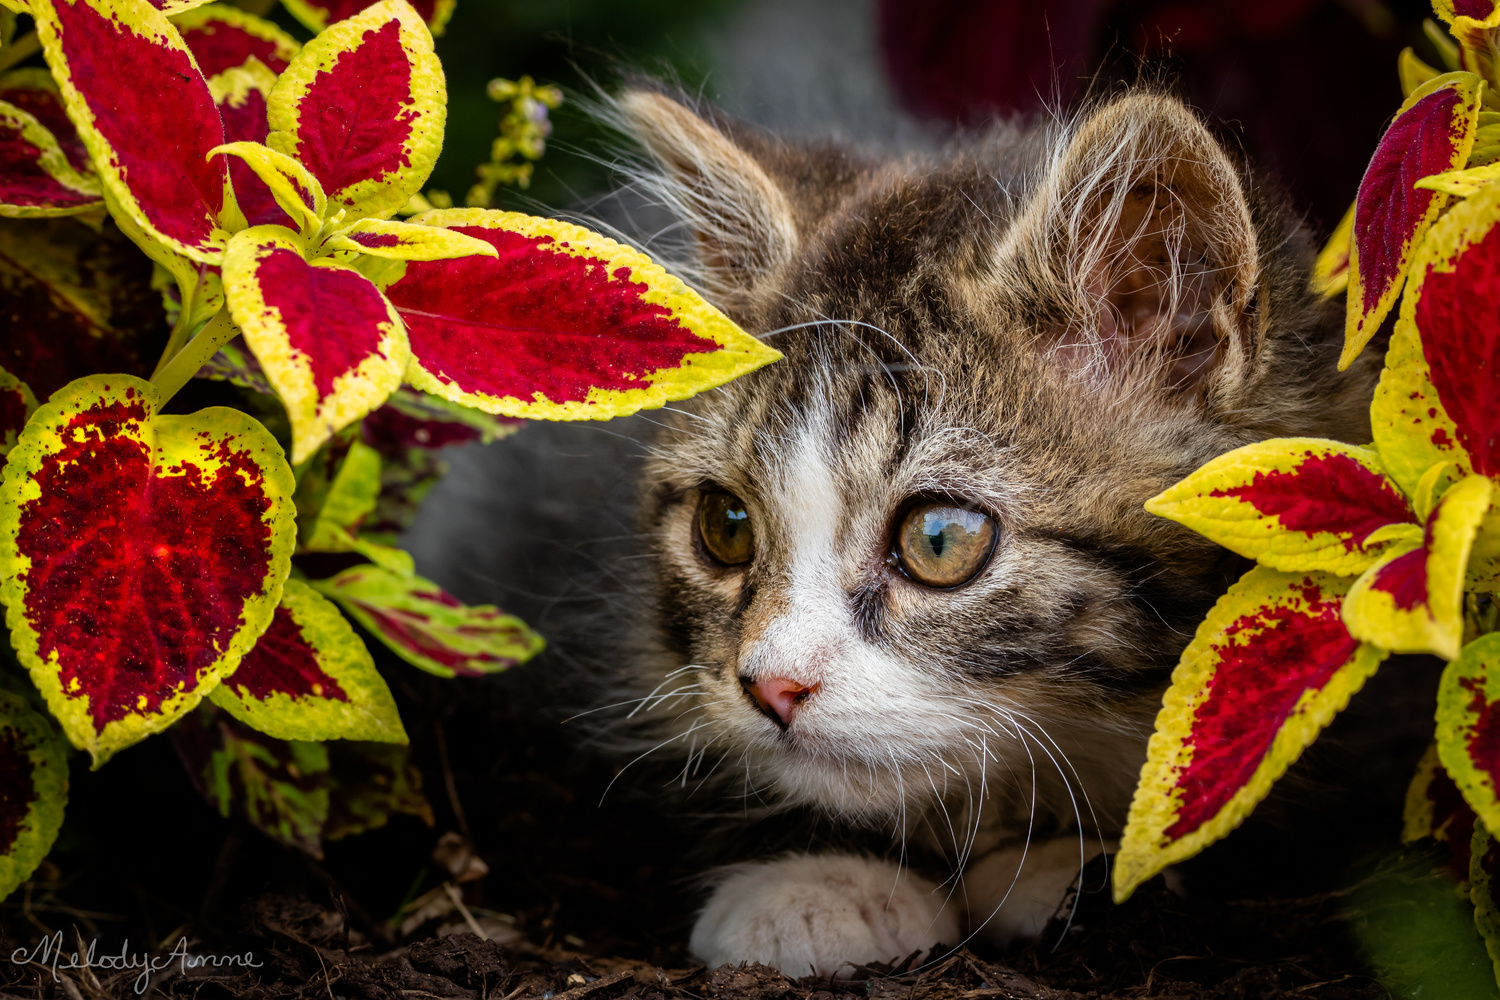 The Tiny Tiger in My Flowerbed by Melody Mellinger